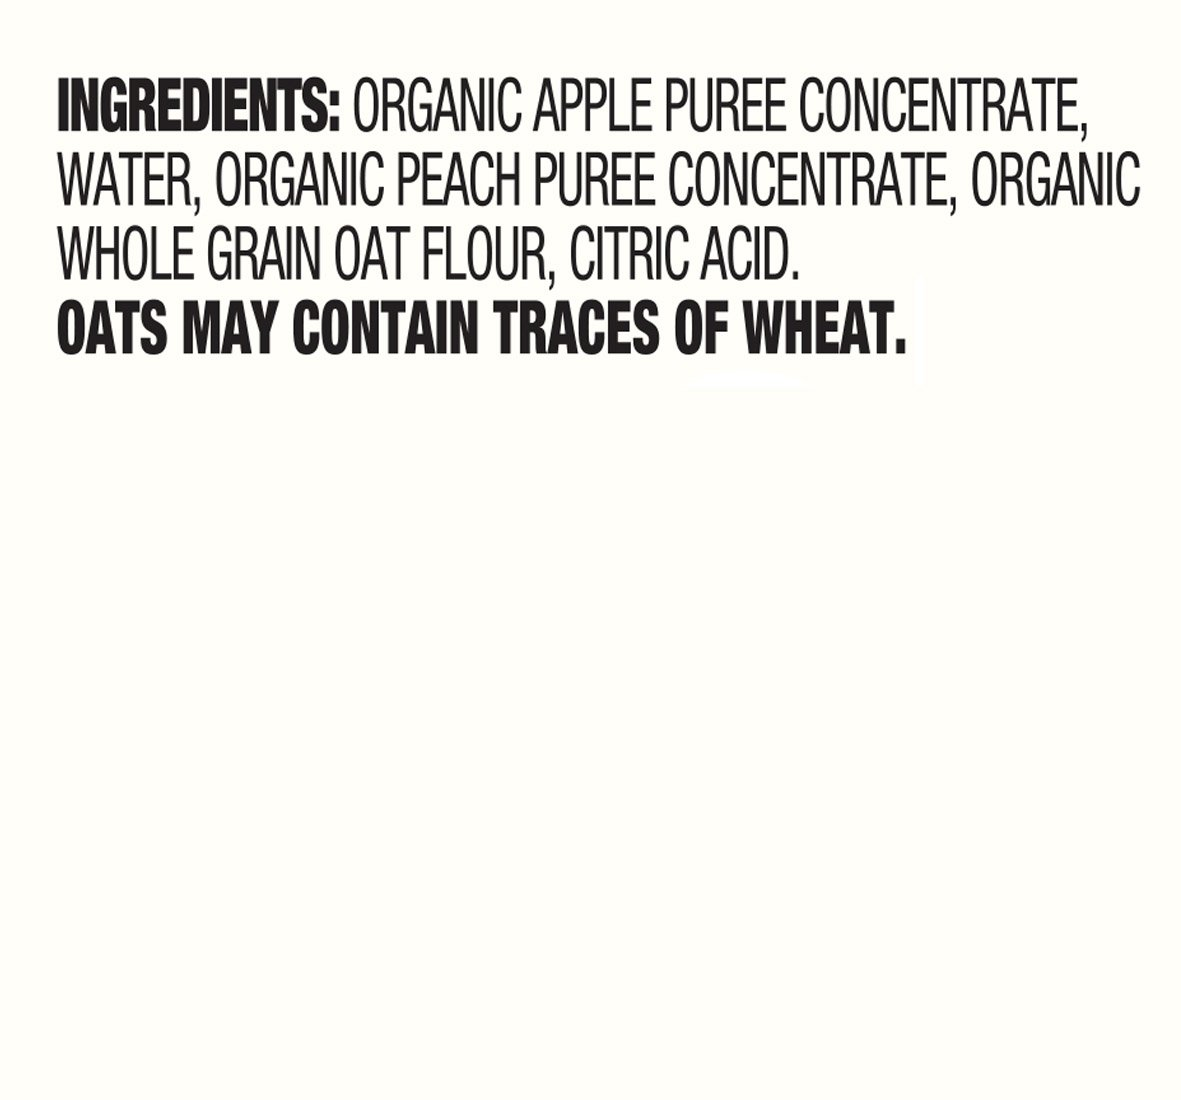 Earth's Best Organic Stage 2 Baby Food, Apple Peach and Oatmeal, 4.2 oz. Pouch (Pack of 12) by Earth's Best (Image #4)